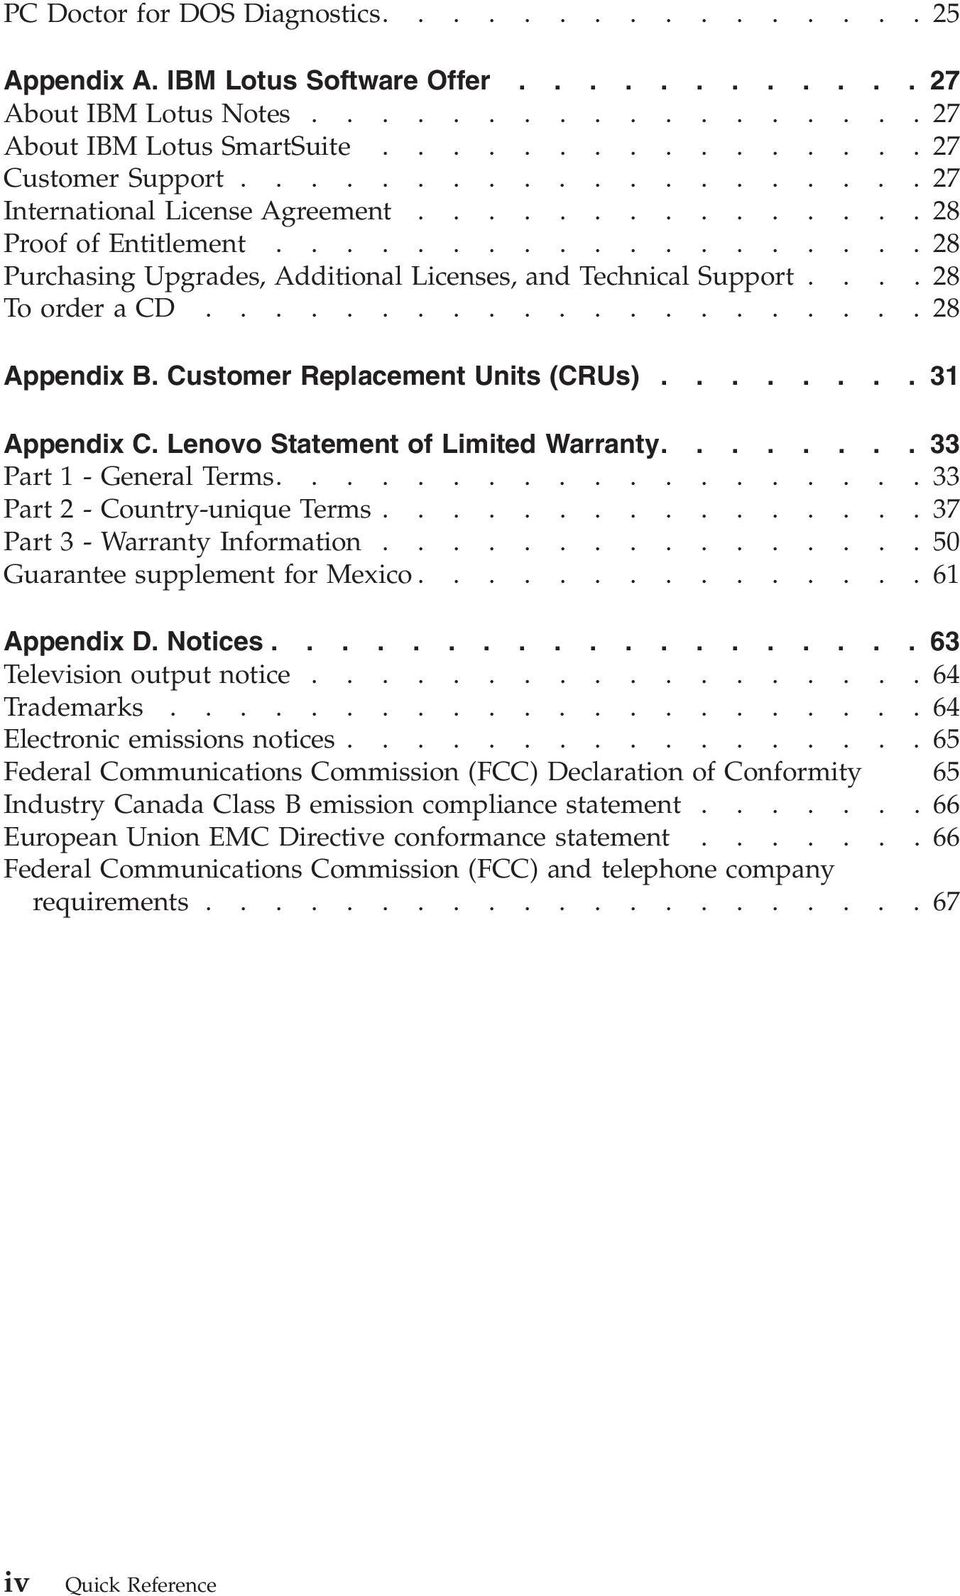 ....................28 Appendix B. Customer Replacement Units (CRUs)........ 31 Appendix C. Lenovo Statement of Limited Warranty........ 33 Part 1 - General Terms...................33 Part 2 - Country-unique Terms.